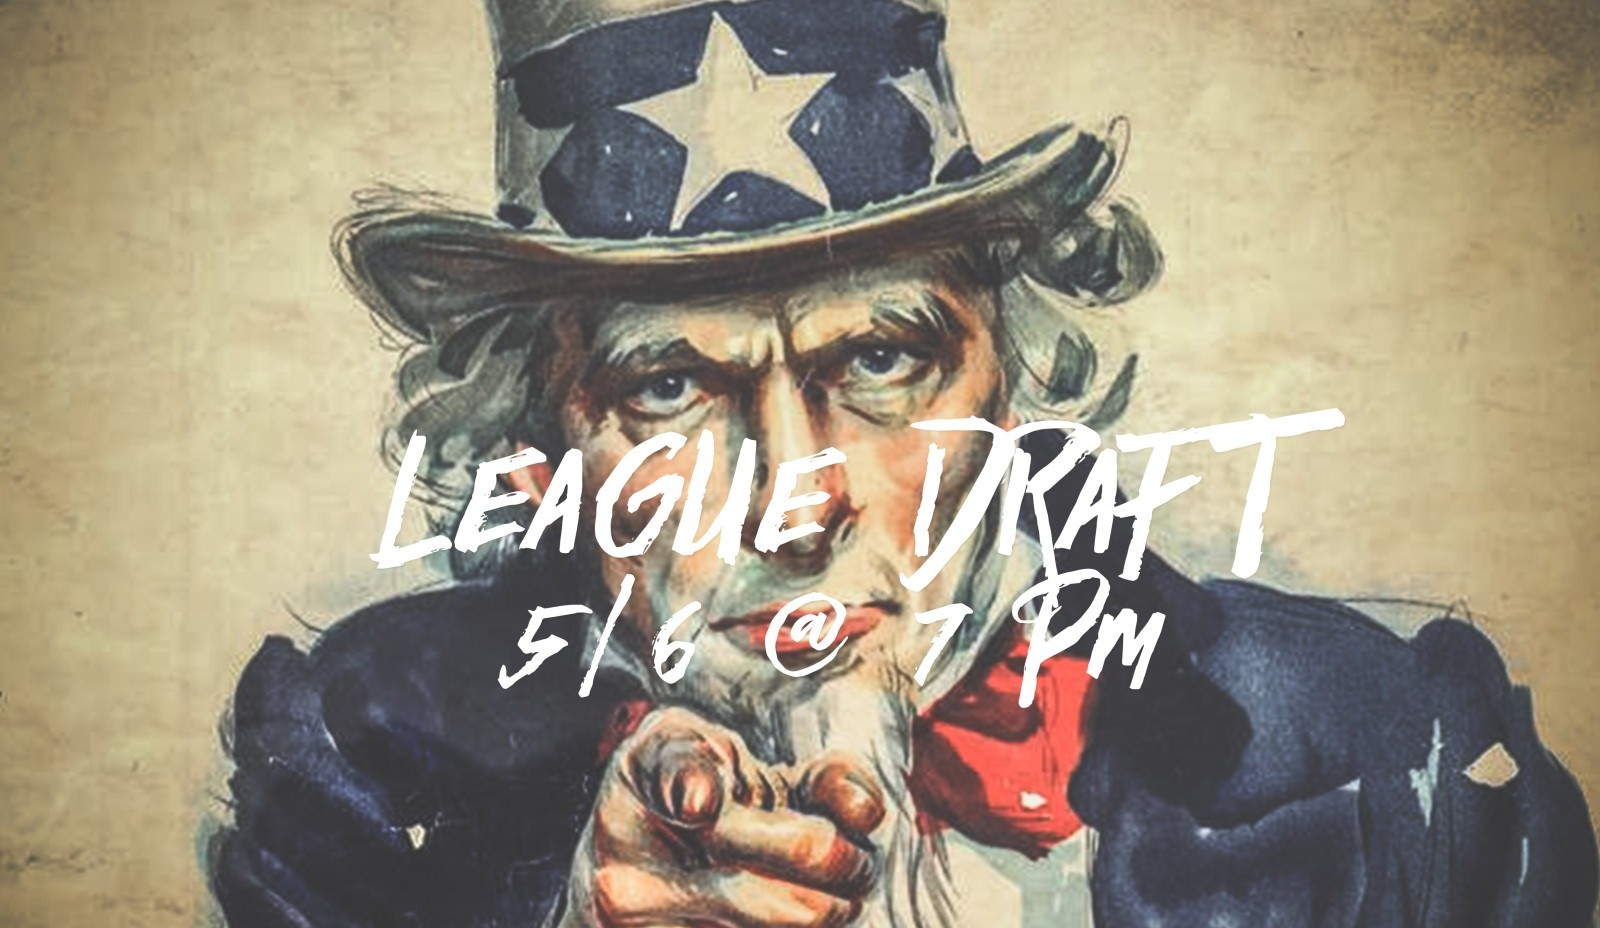 League-Draft-Image